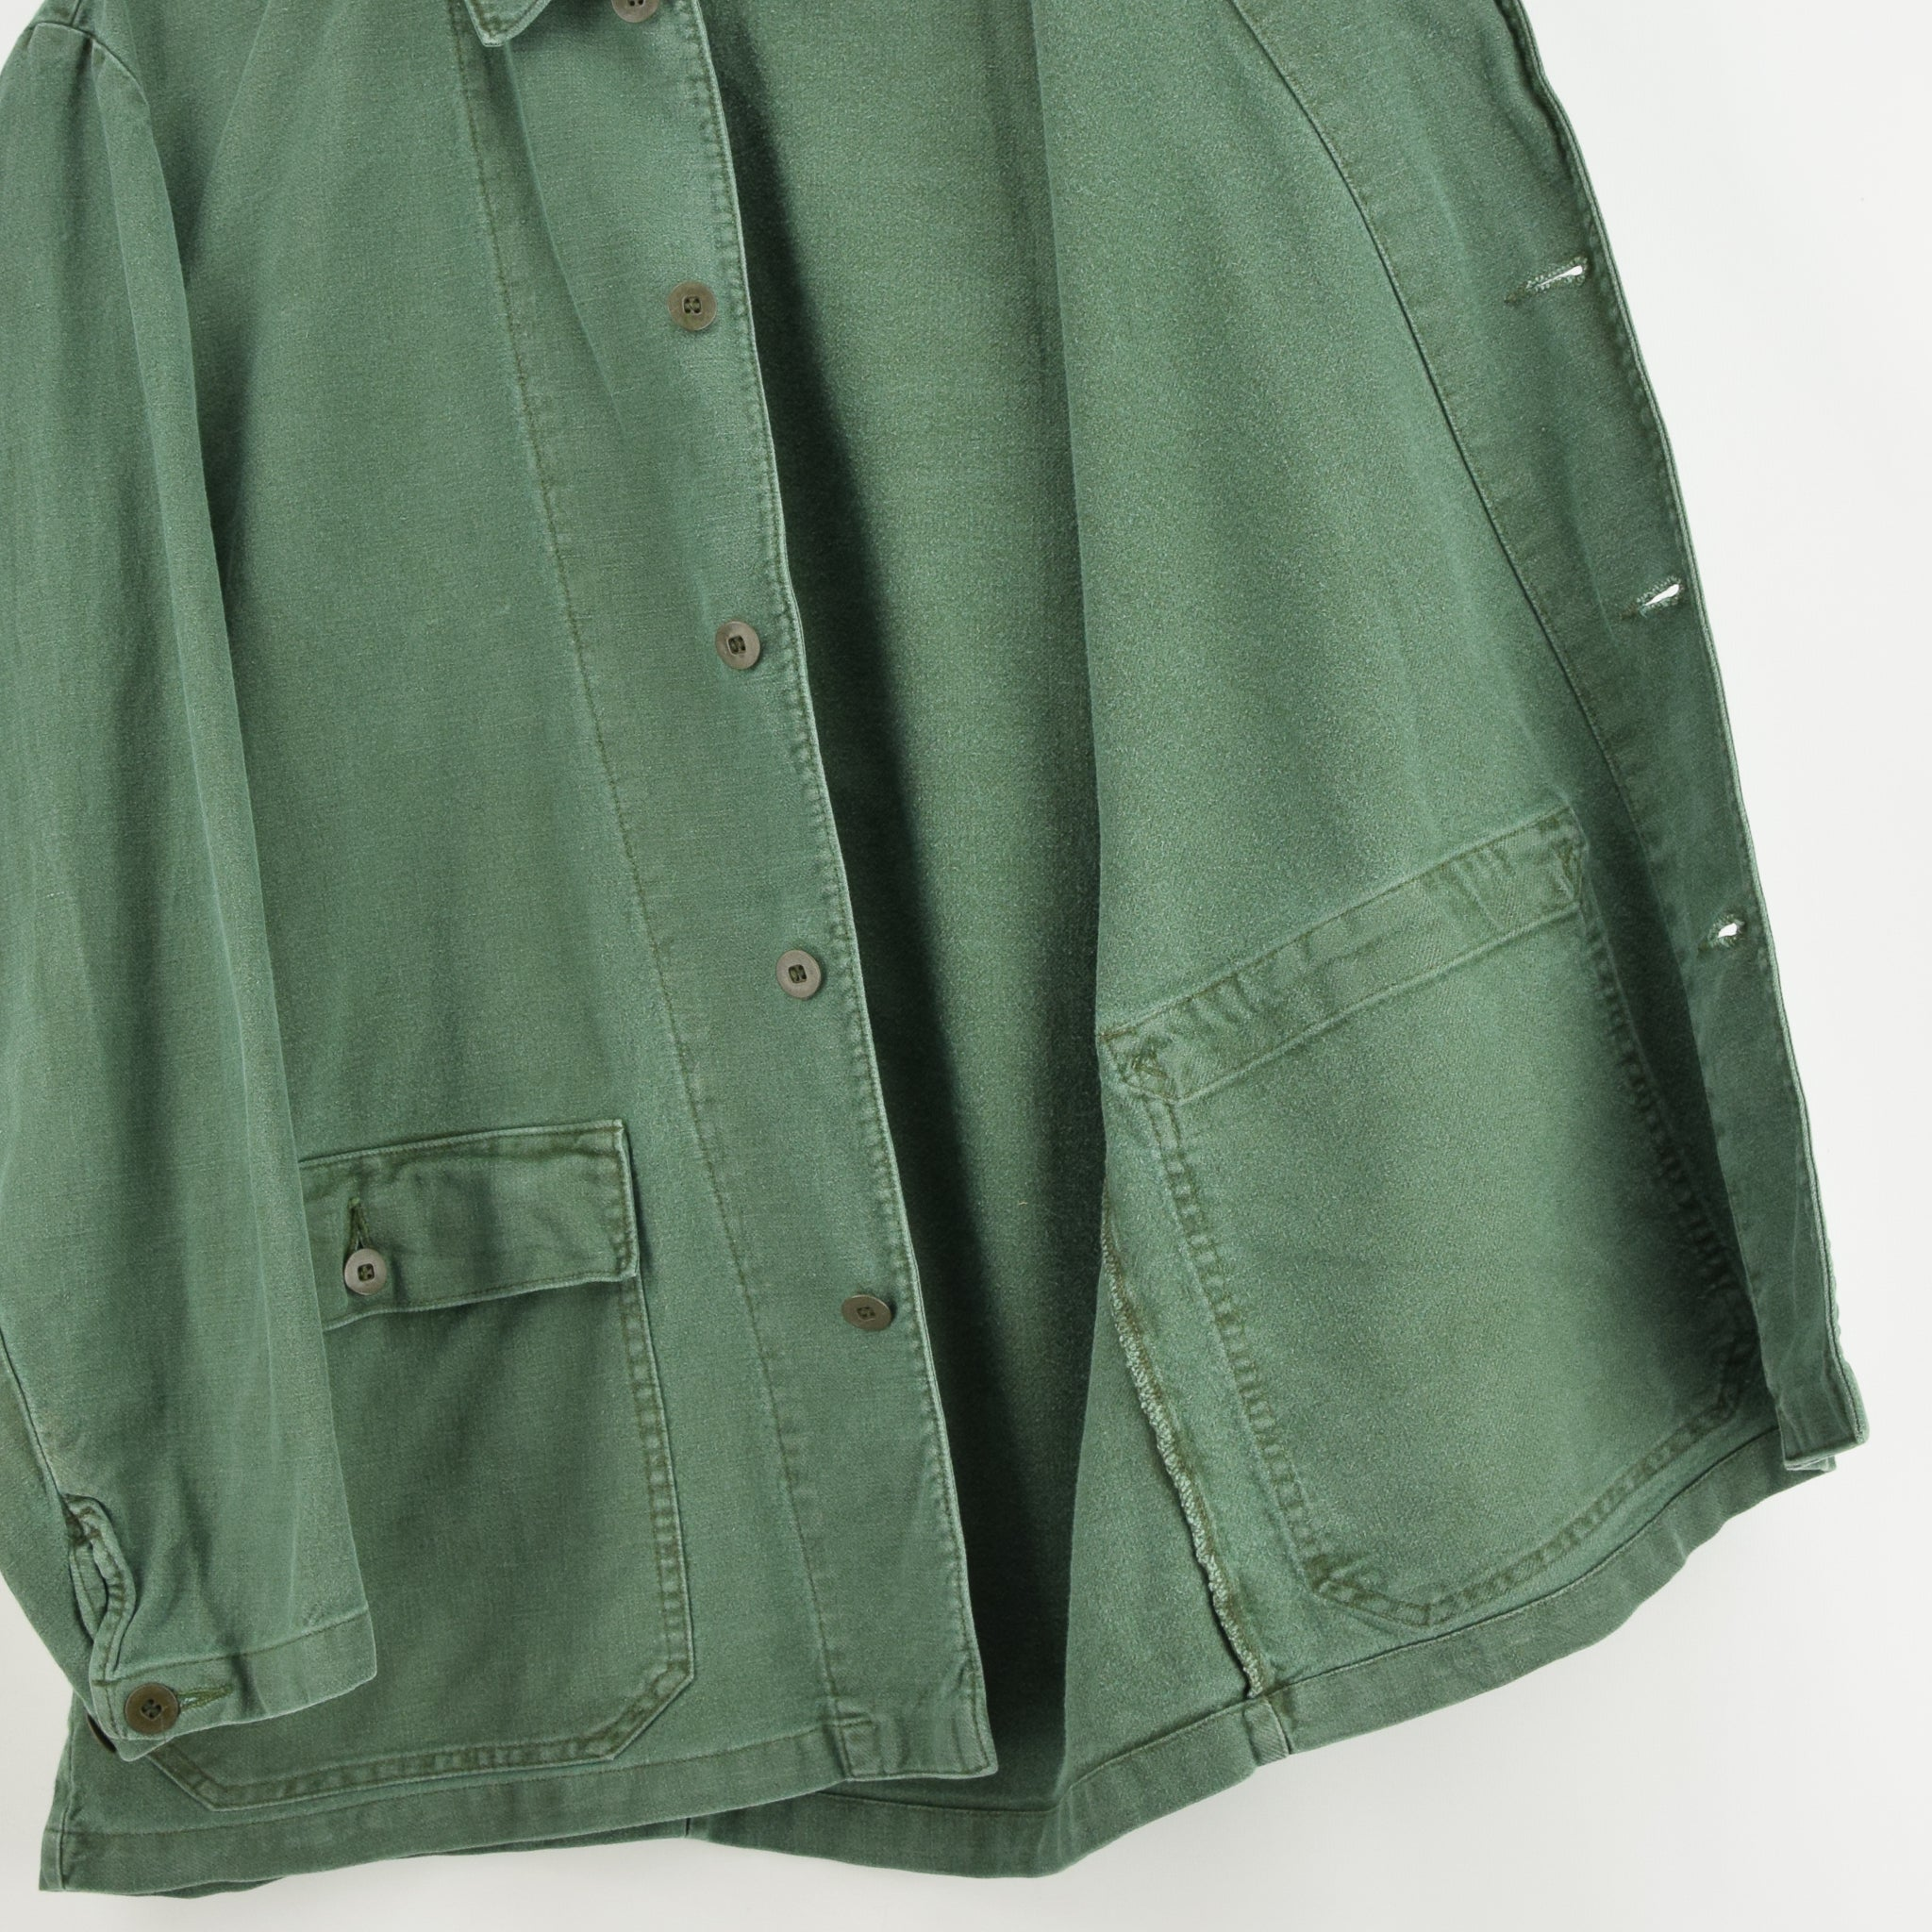 Vintage Swedish Worker Style Green Distressed Military Cotton Field Jacket M lining